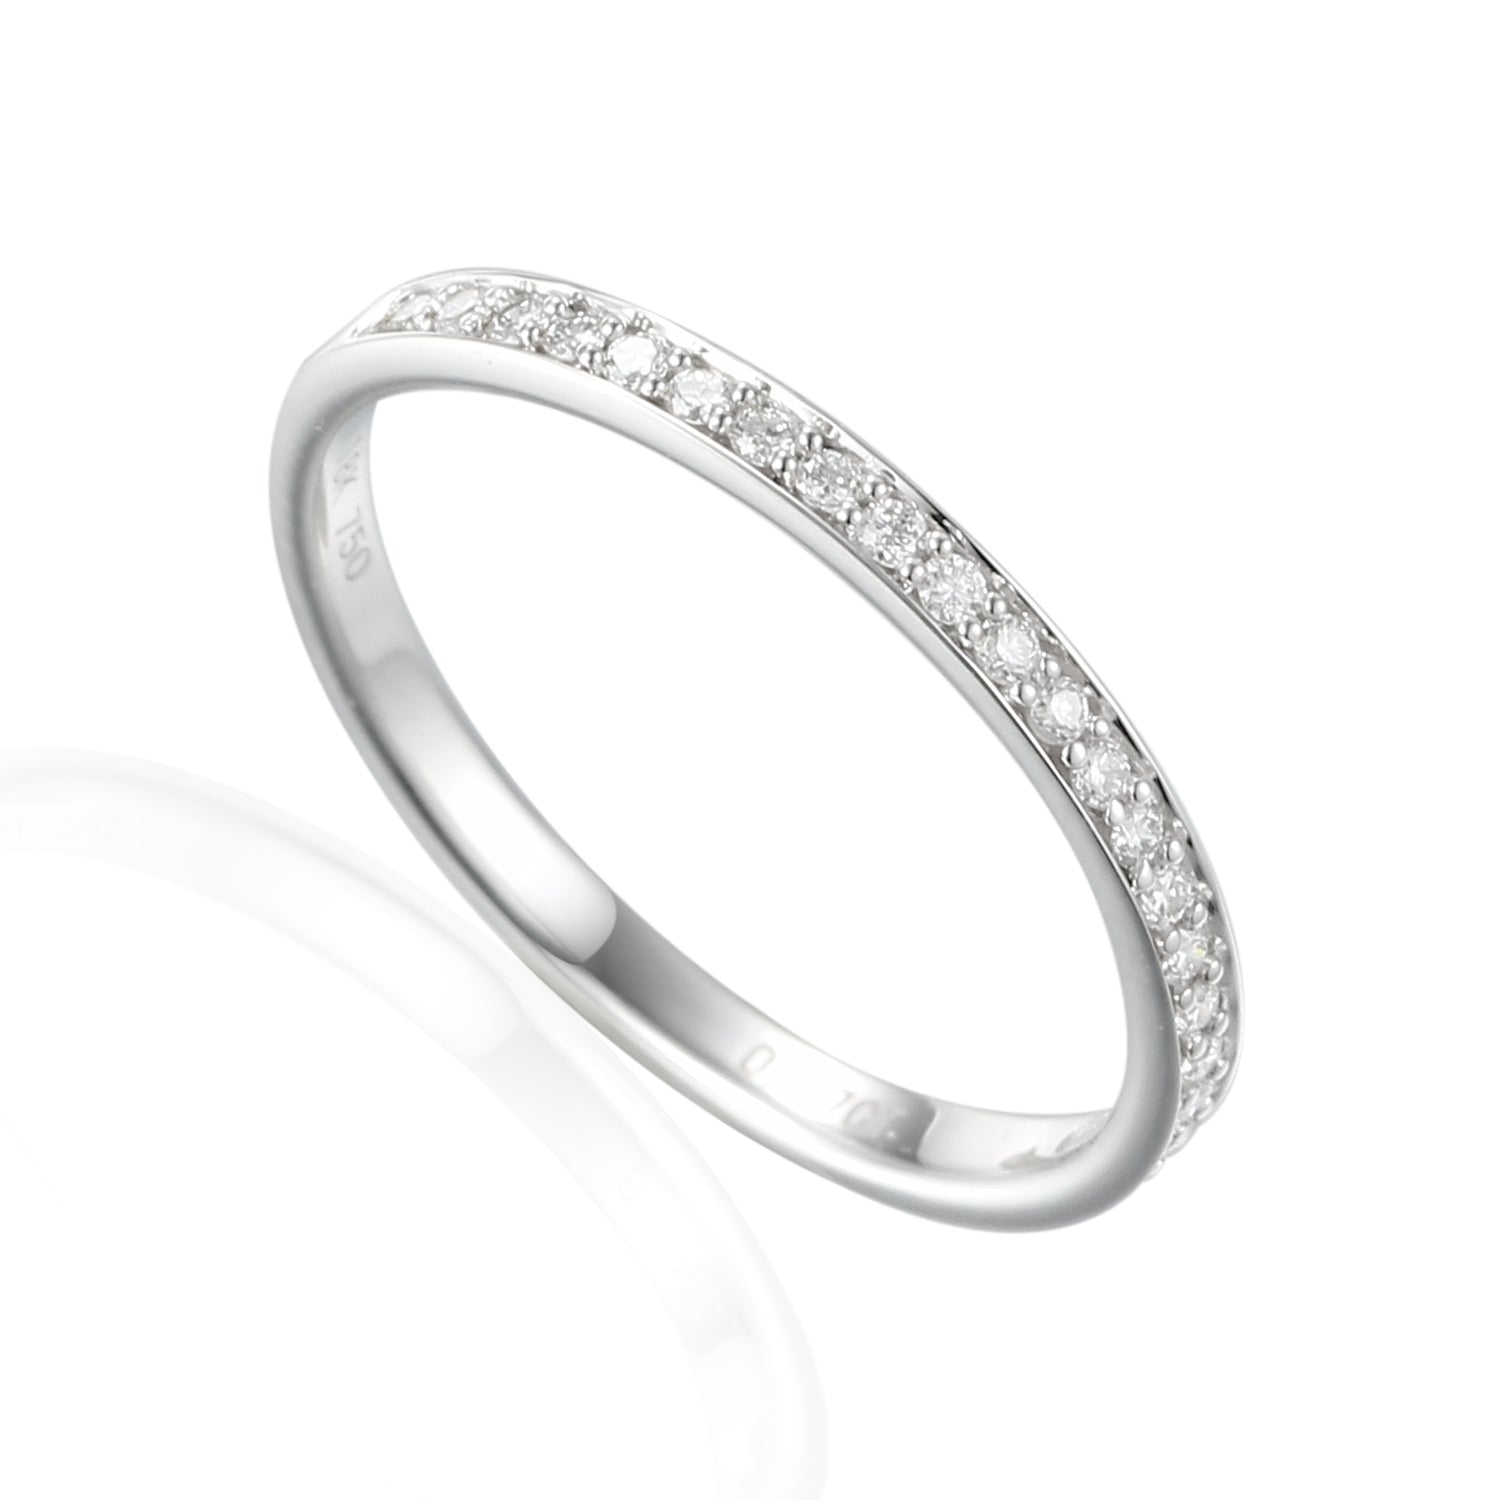 round baguette diamond kwon products designs eternity band bands img ban jennie